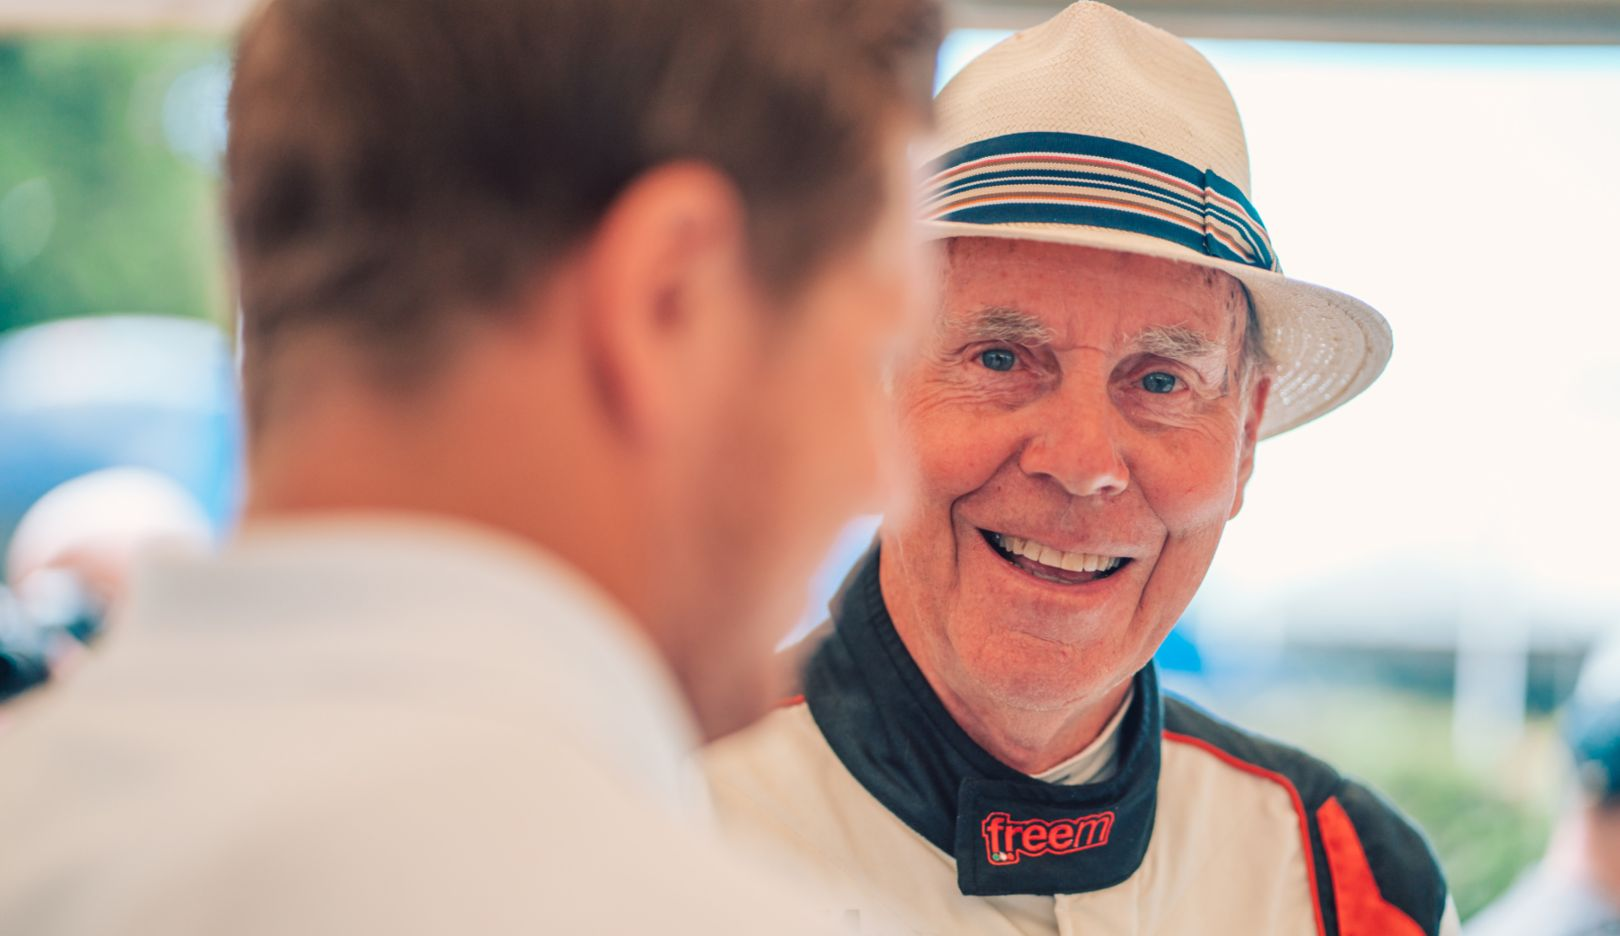 Richard Attwood, Festival de la Velocidad de Goodwood, 2019, Porsche AG